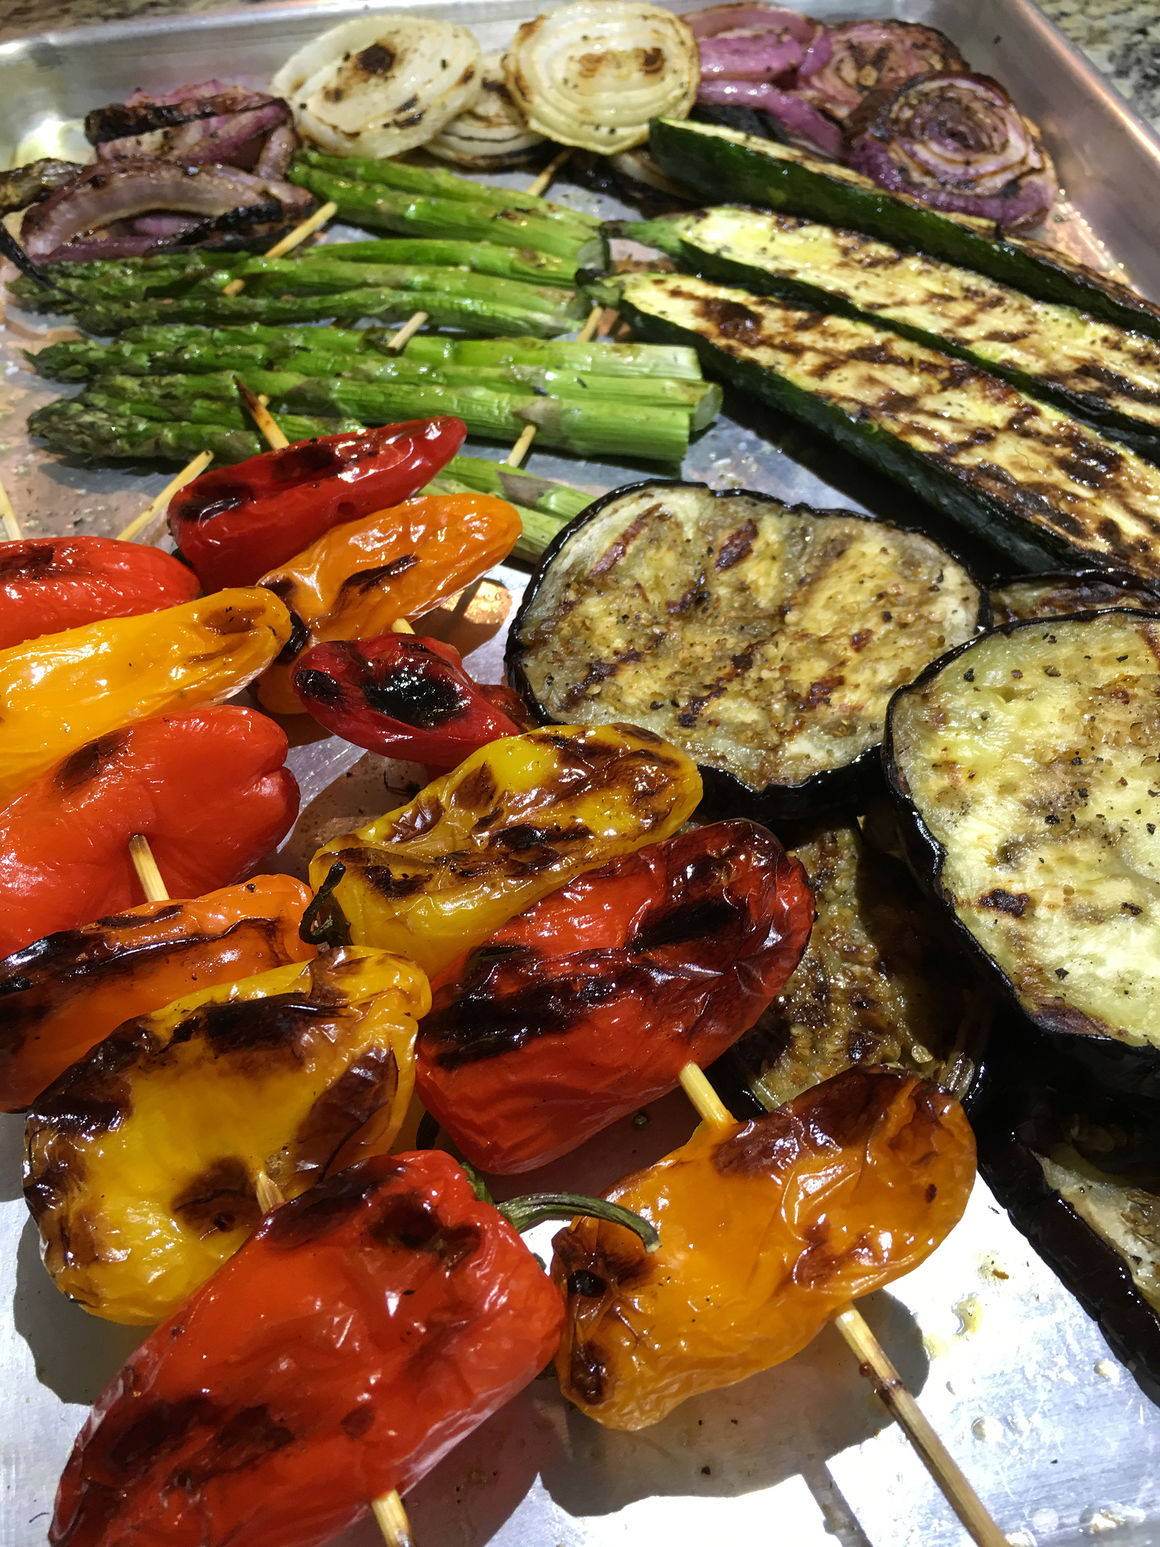 From the garden to the grill | Food | qconline.com